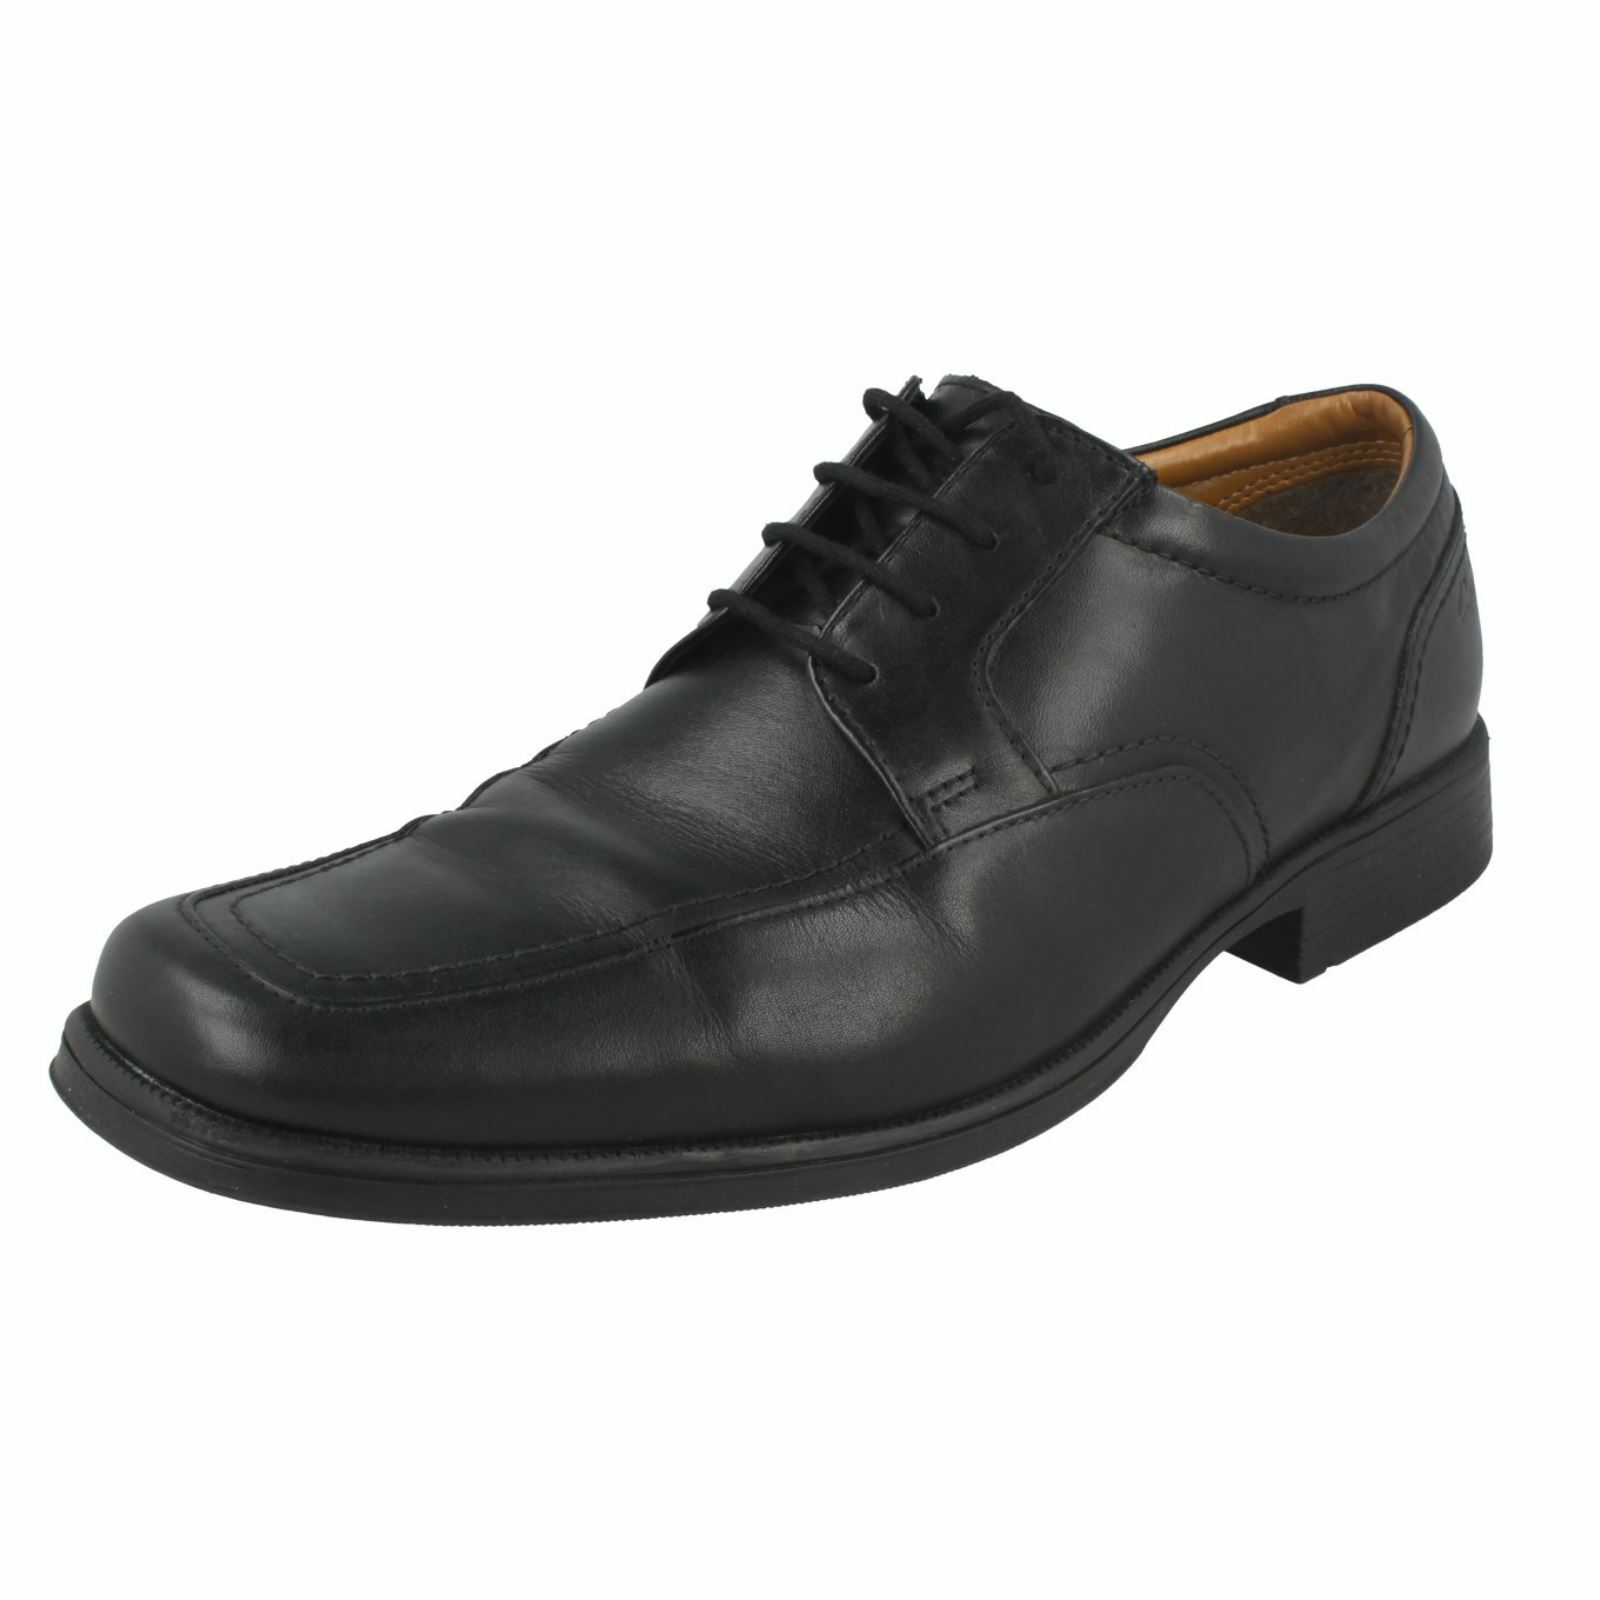 'Mens Clarks' Formal Lace Up Shoes - Huckley Spring